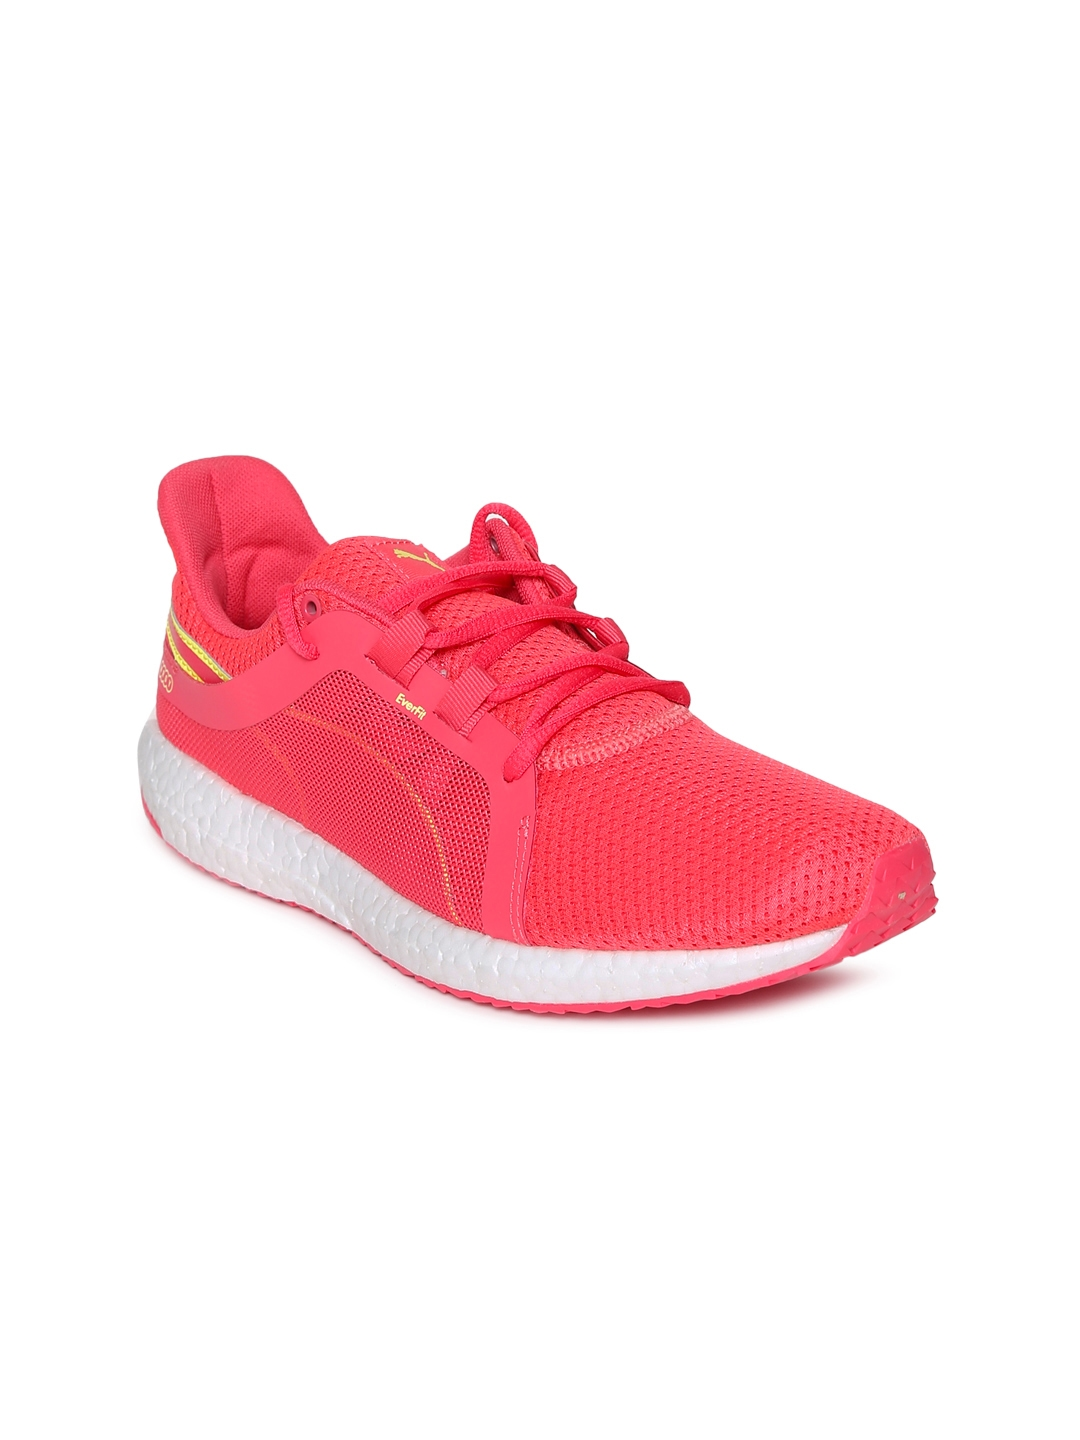 d2ec4652ced7 Buy Puma Women Pink Mega NRGY Turbo 2 Wns Running Shoes - Sports ...